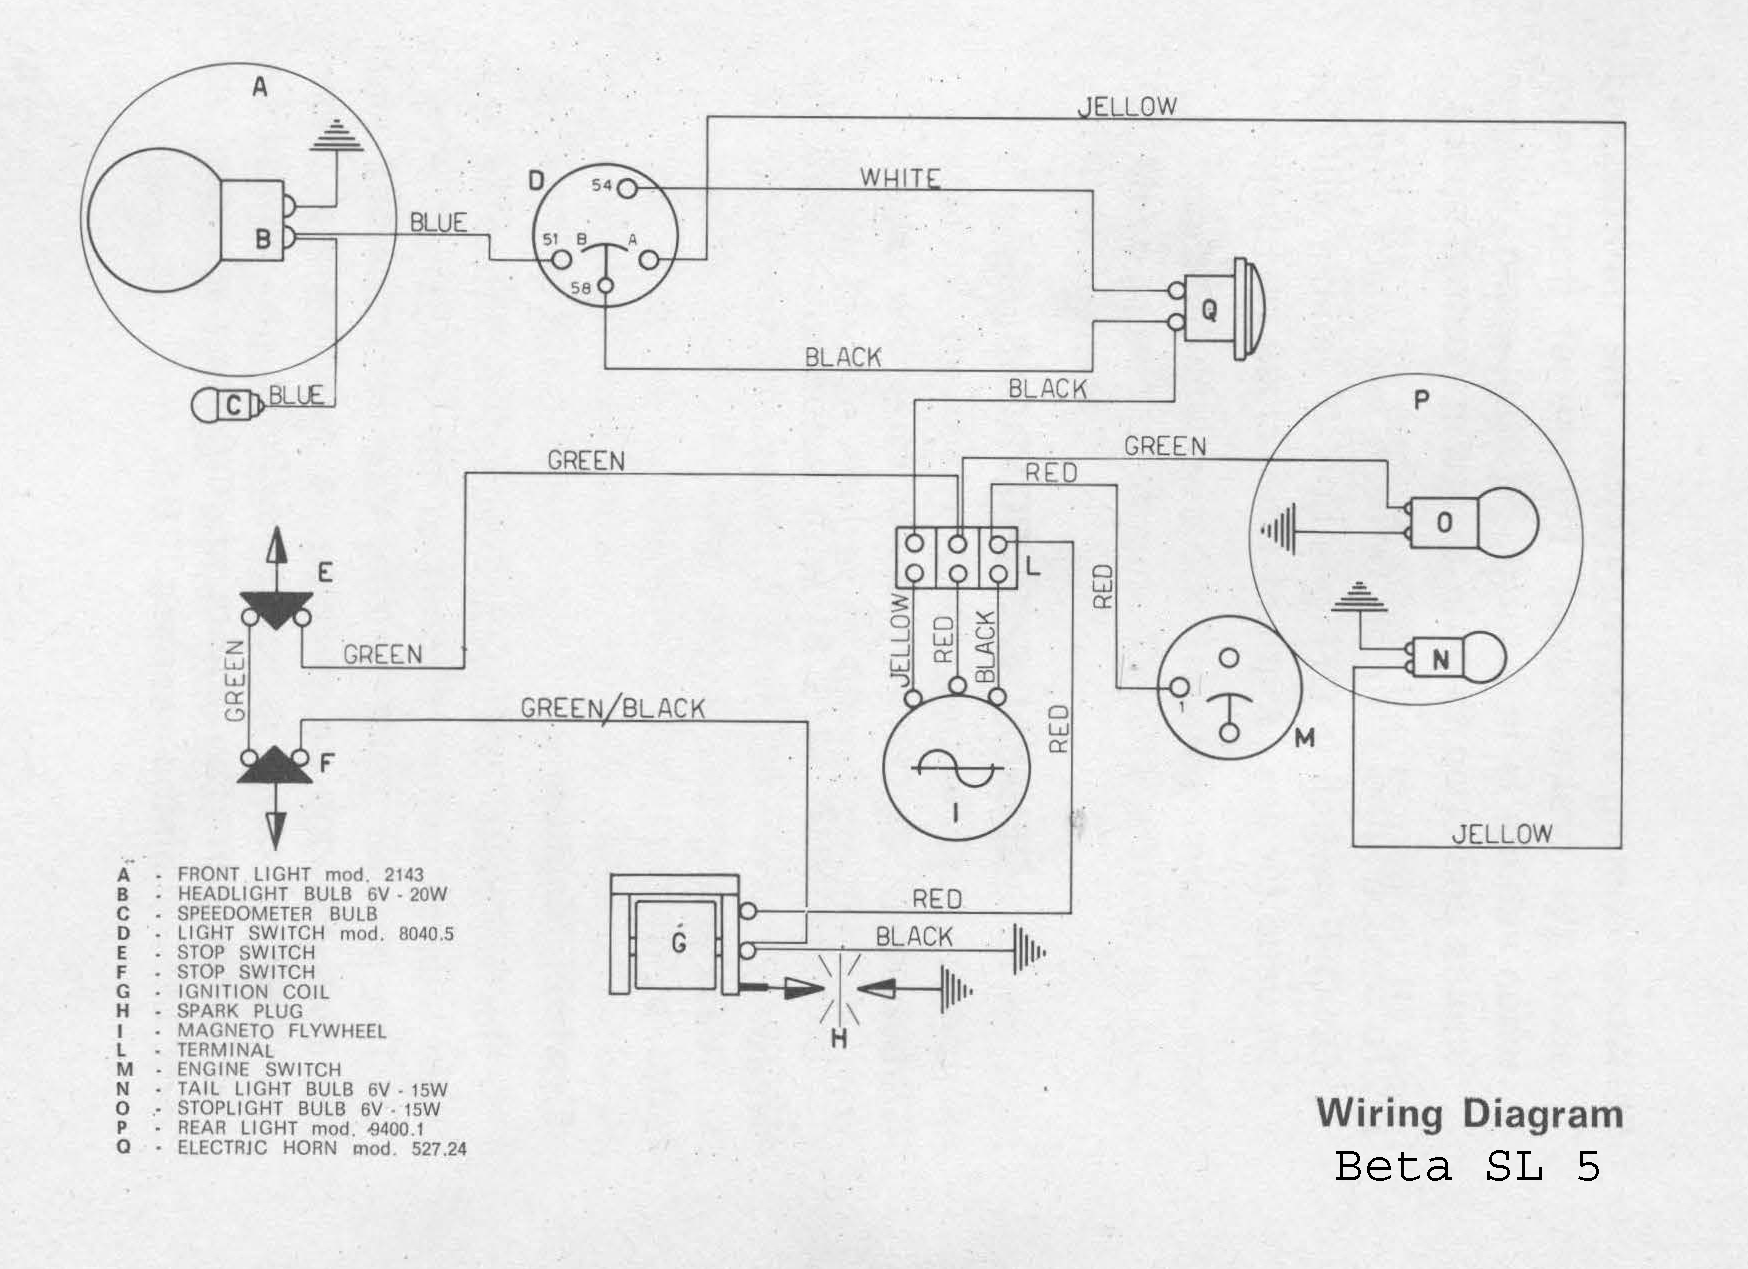 Beta Wiring Diagram Detailed Schematics Chrysler Moped Wiki Kasea